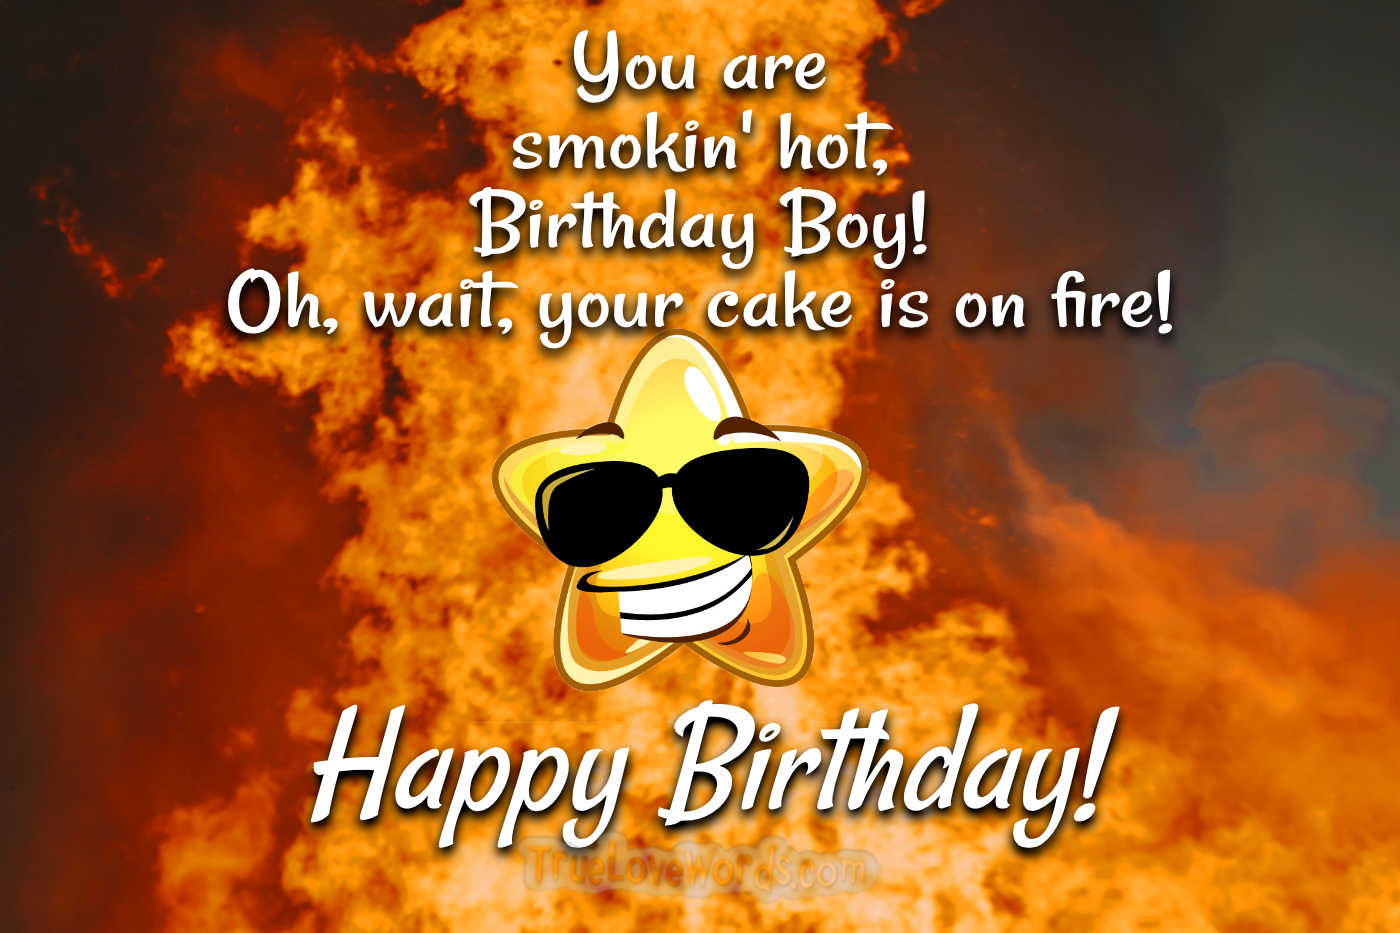 Funny Birthday Wishes And Birthday Memes True Love Words